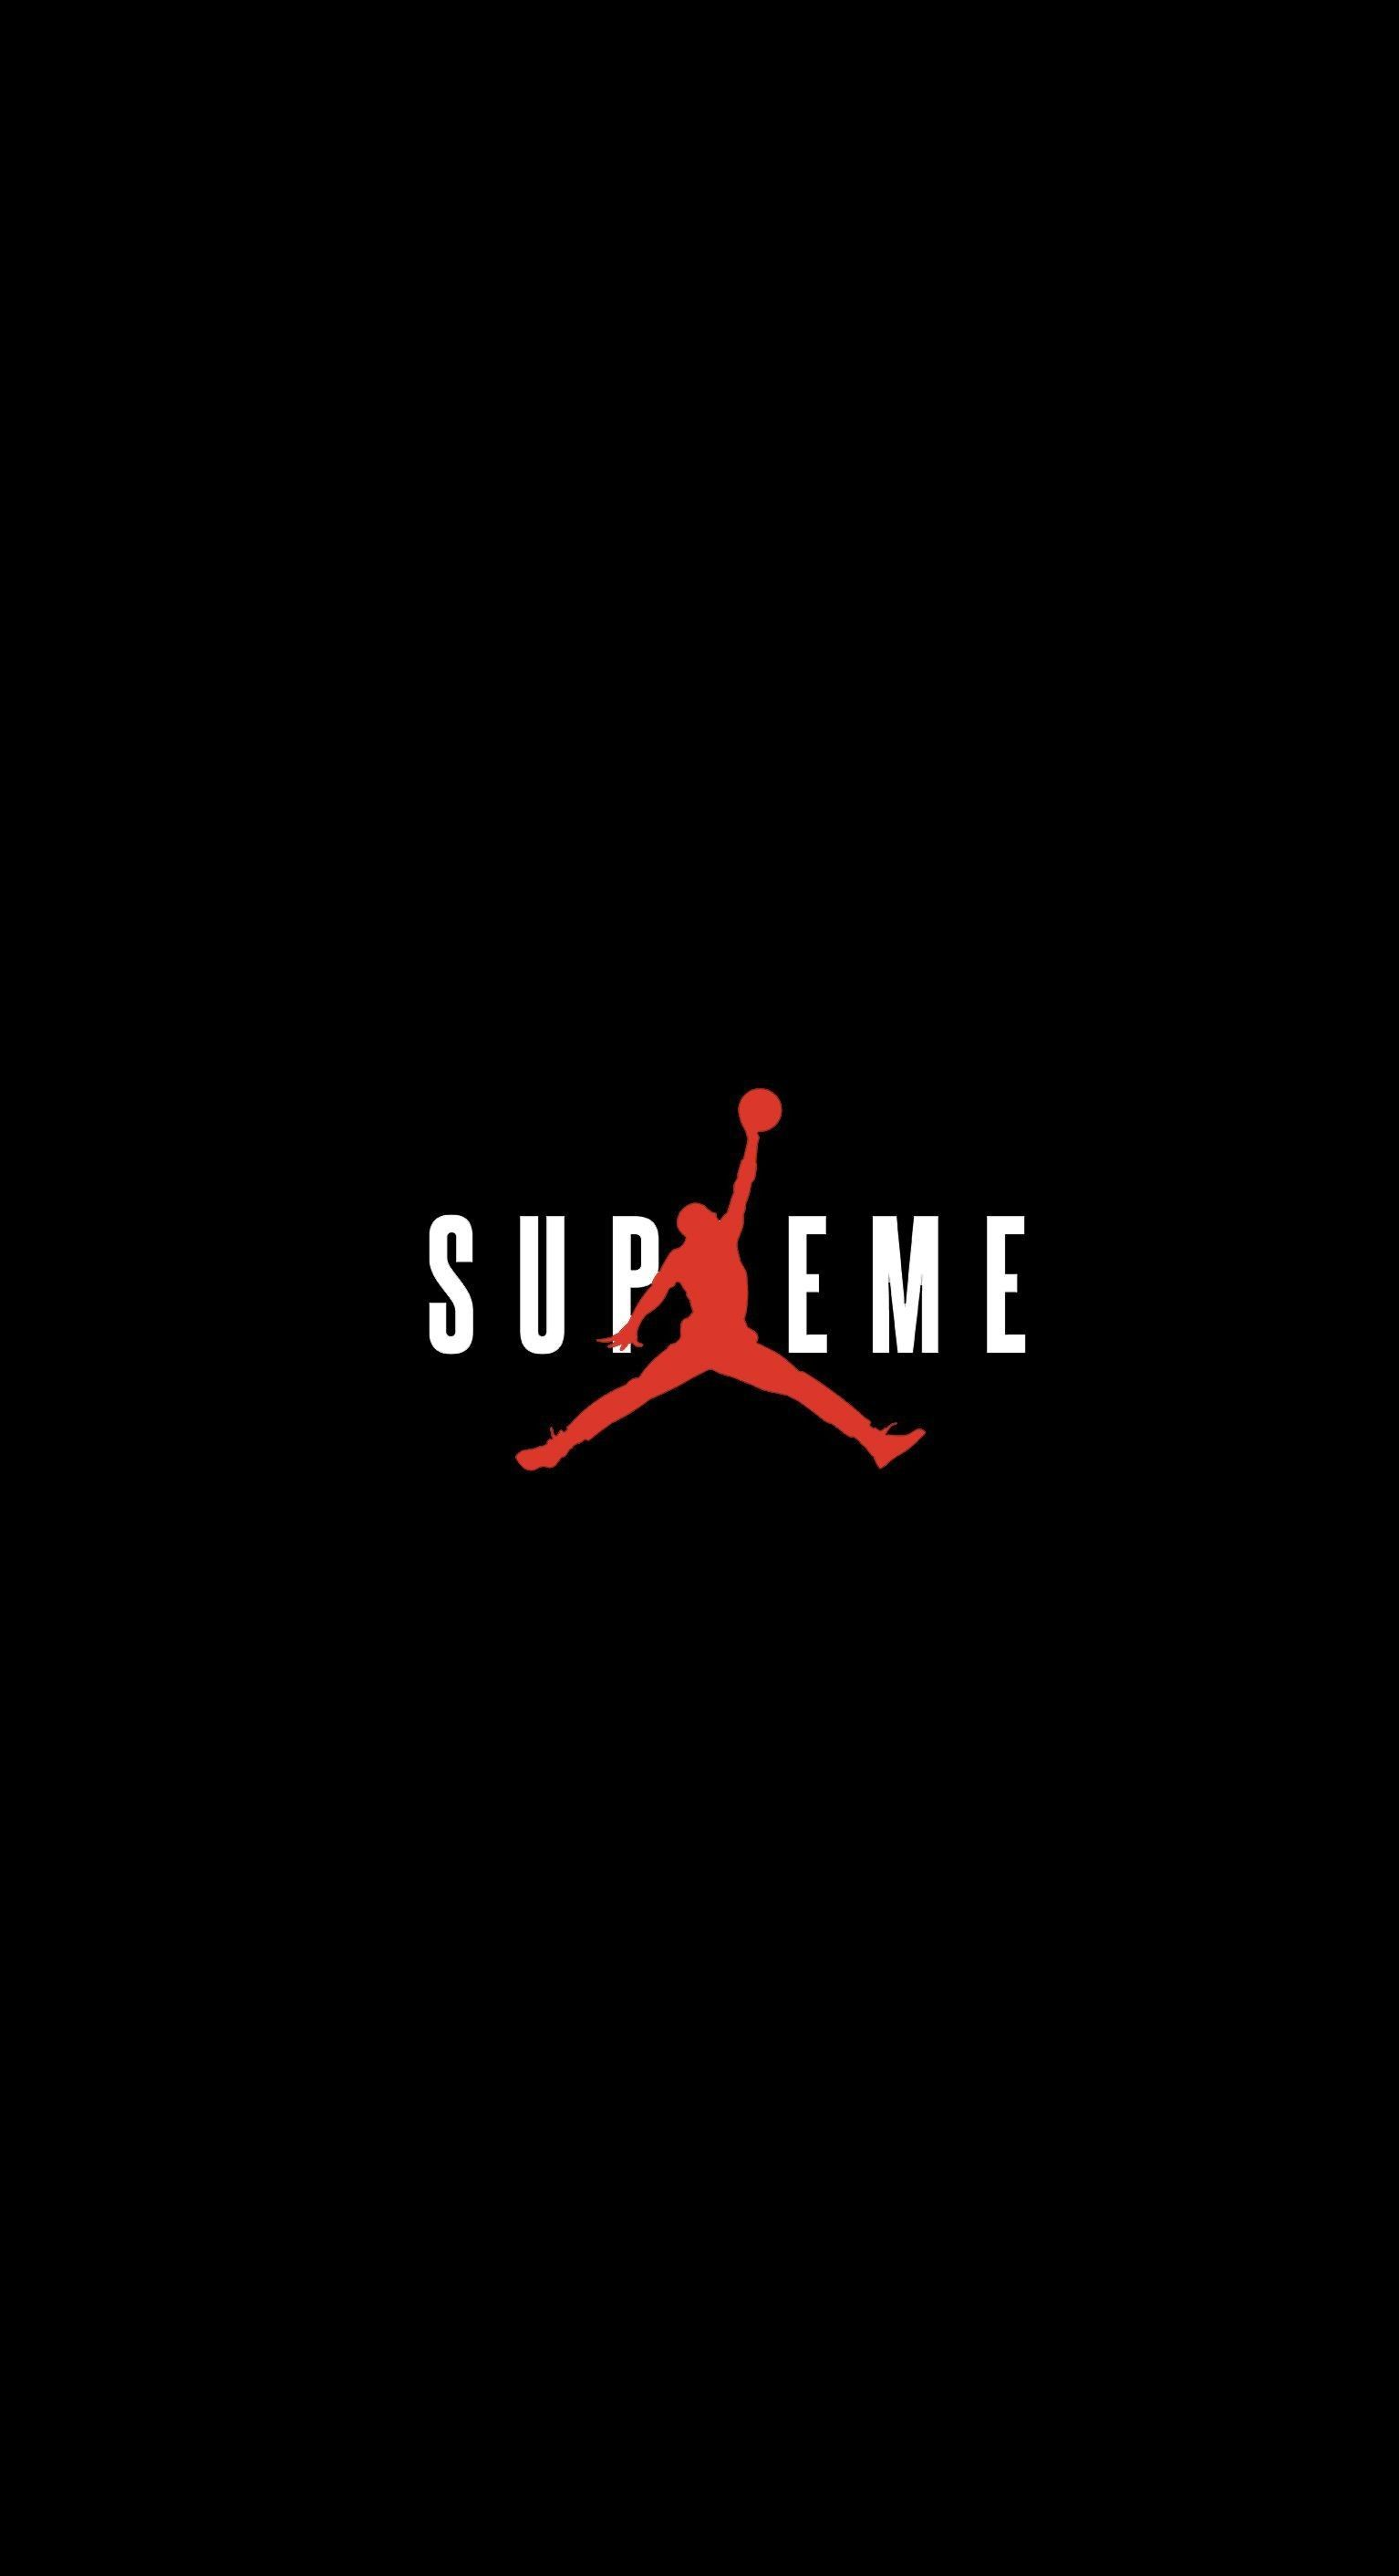 1534x2824 Supreme Gucci Wallpaper Elegant Skater David Pinterest - Elak Wallpaper